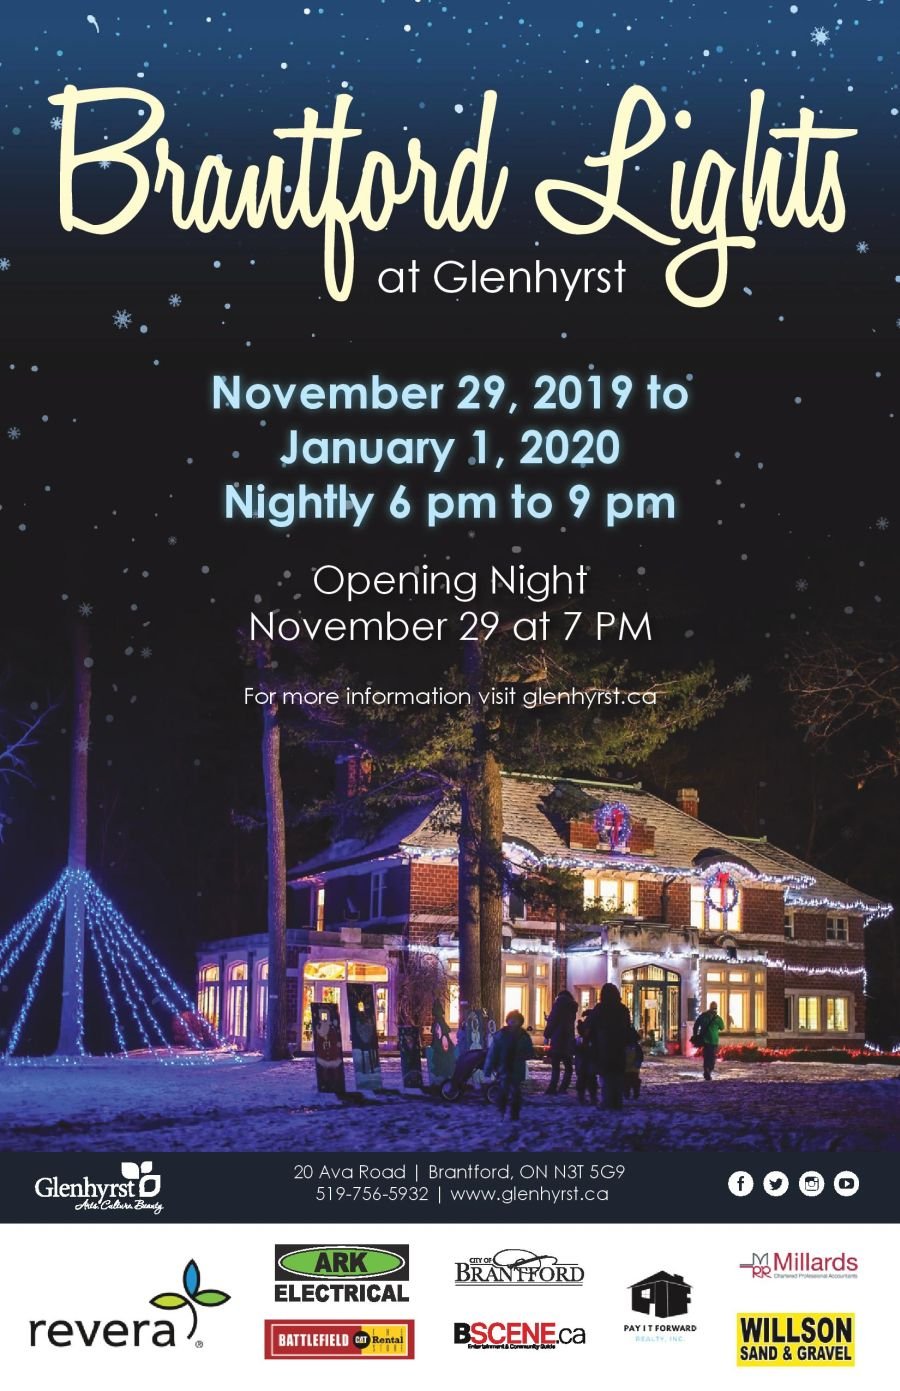 Brantford Lights at Glenhyrst poster